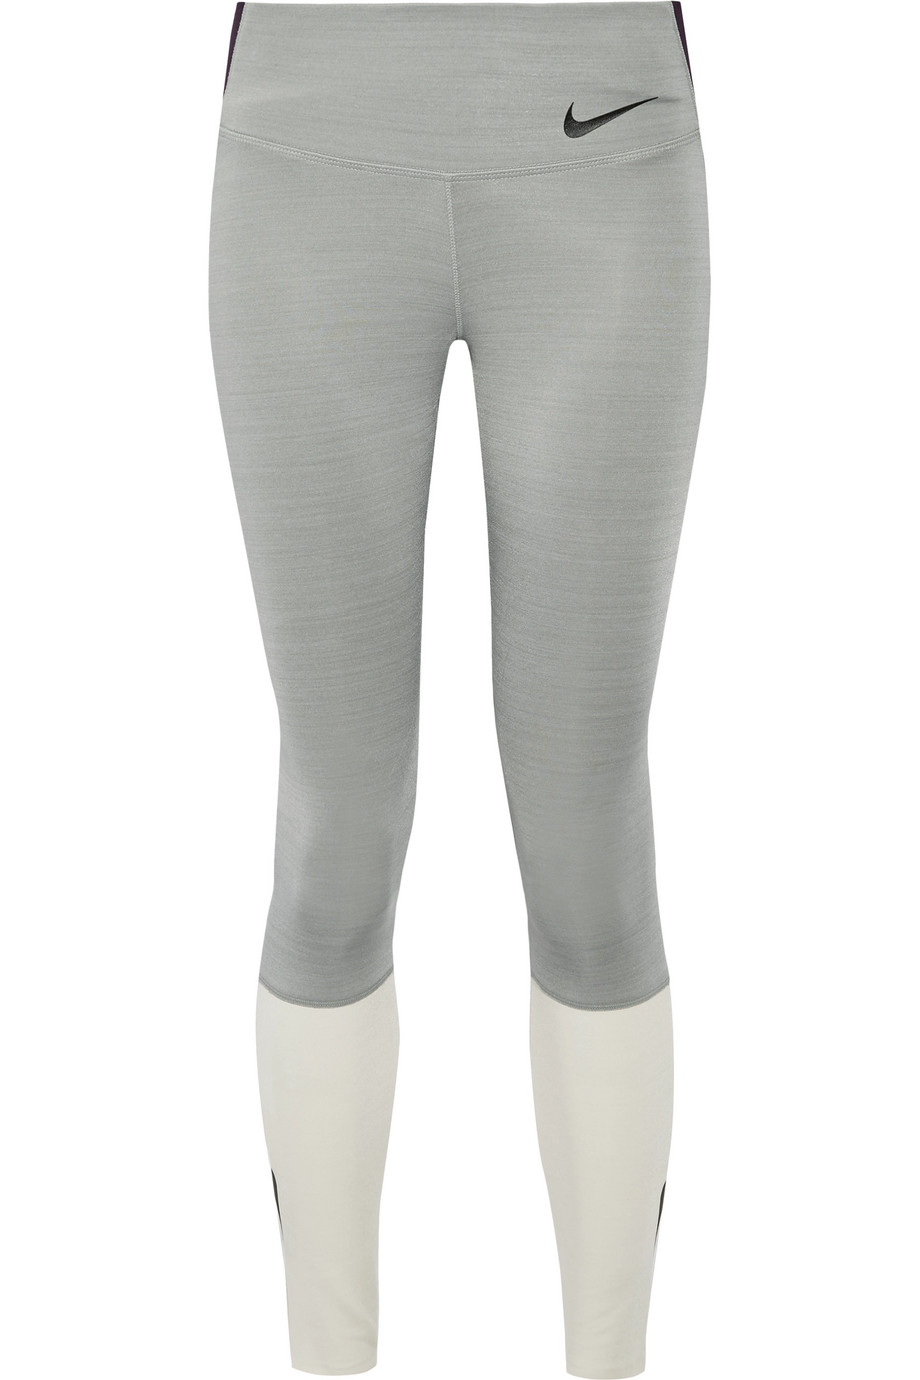 cheap nike running leggings womens